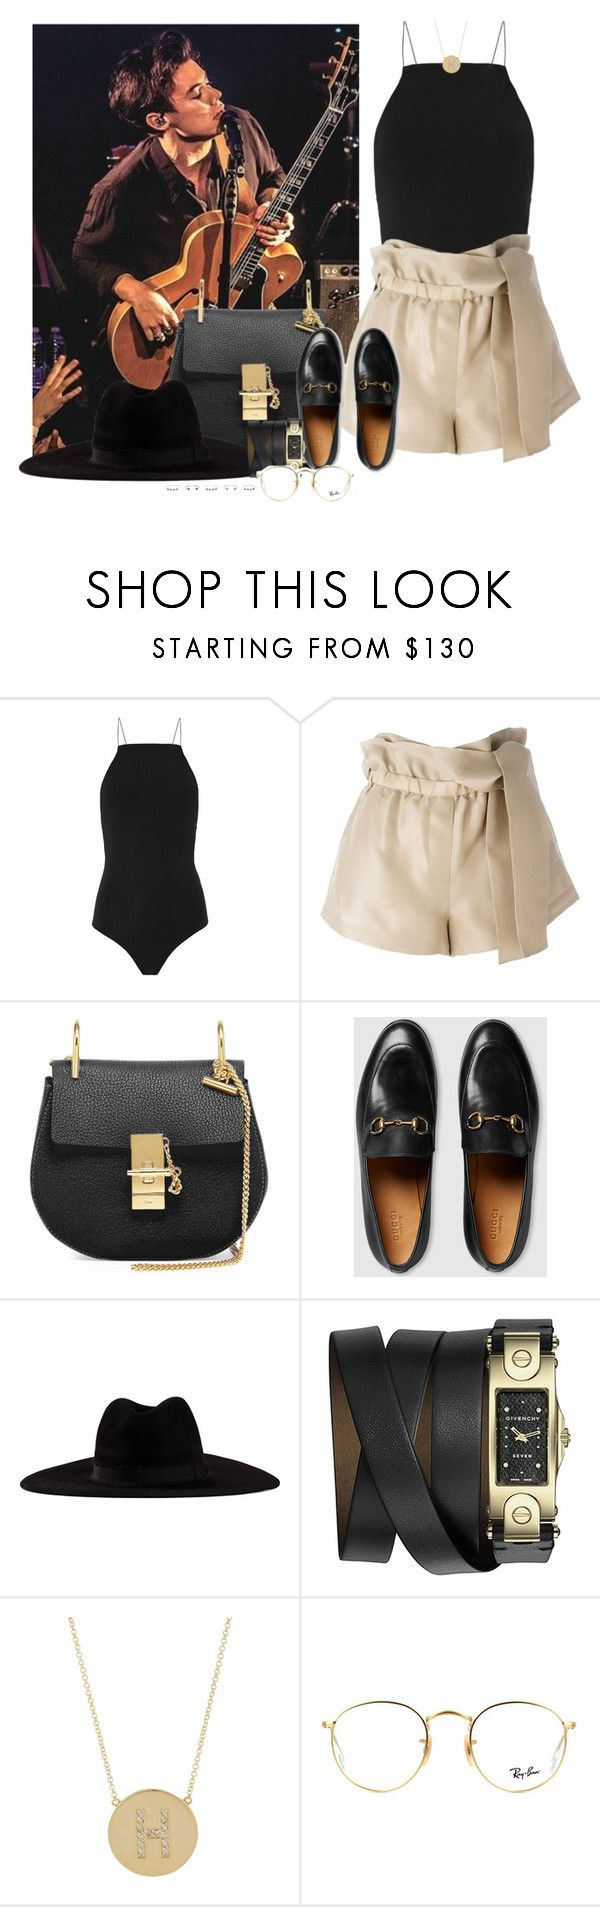 """""""First Solo US Show, The Troubadour: Los Angeles, California - 19 May 2017"""" by thisistheend ❤ liked on Polyvore featuring T By Alexander Wang, 3.1 Phillip Lim, Chloé, Gucci, Filù Hats, Givenchy, Jennifer Meyer Jewelry, Ray-Ban and Isabel Marant"""